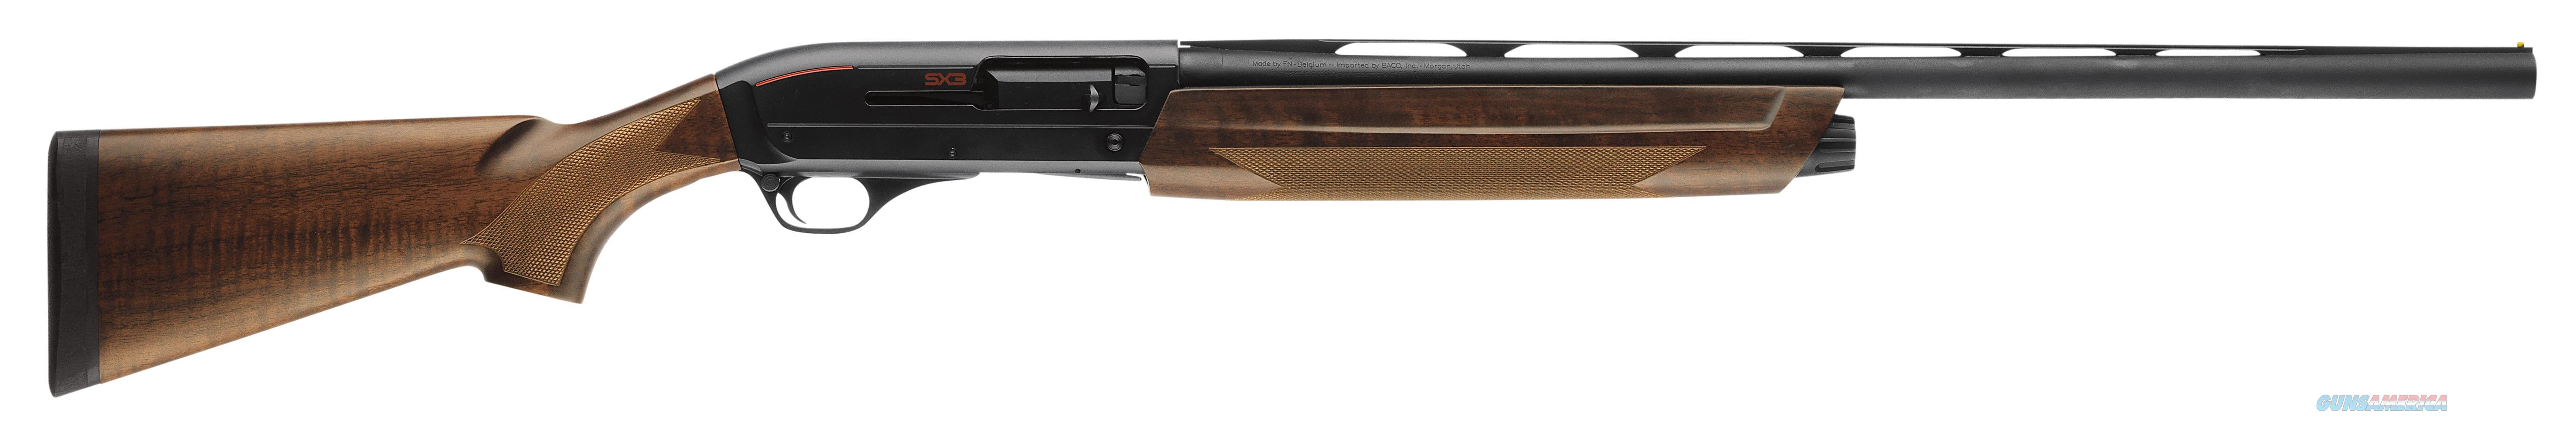 "Winchester Guns 511172393 Sx3 Semi-Automatic 12 Gauge 30"" 2.75"" Carbon Fiber Synthetic Stk Nickel Rcvr 511172393  Guns > Shotguns > W Misc Shotguns"